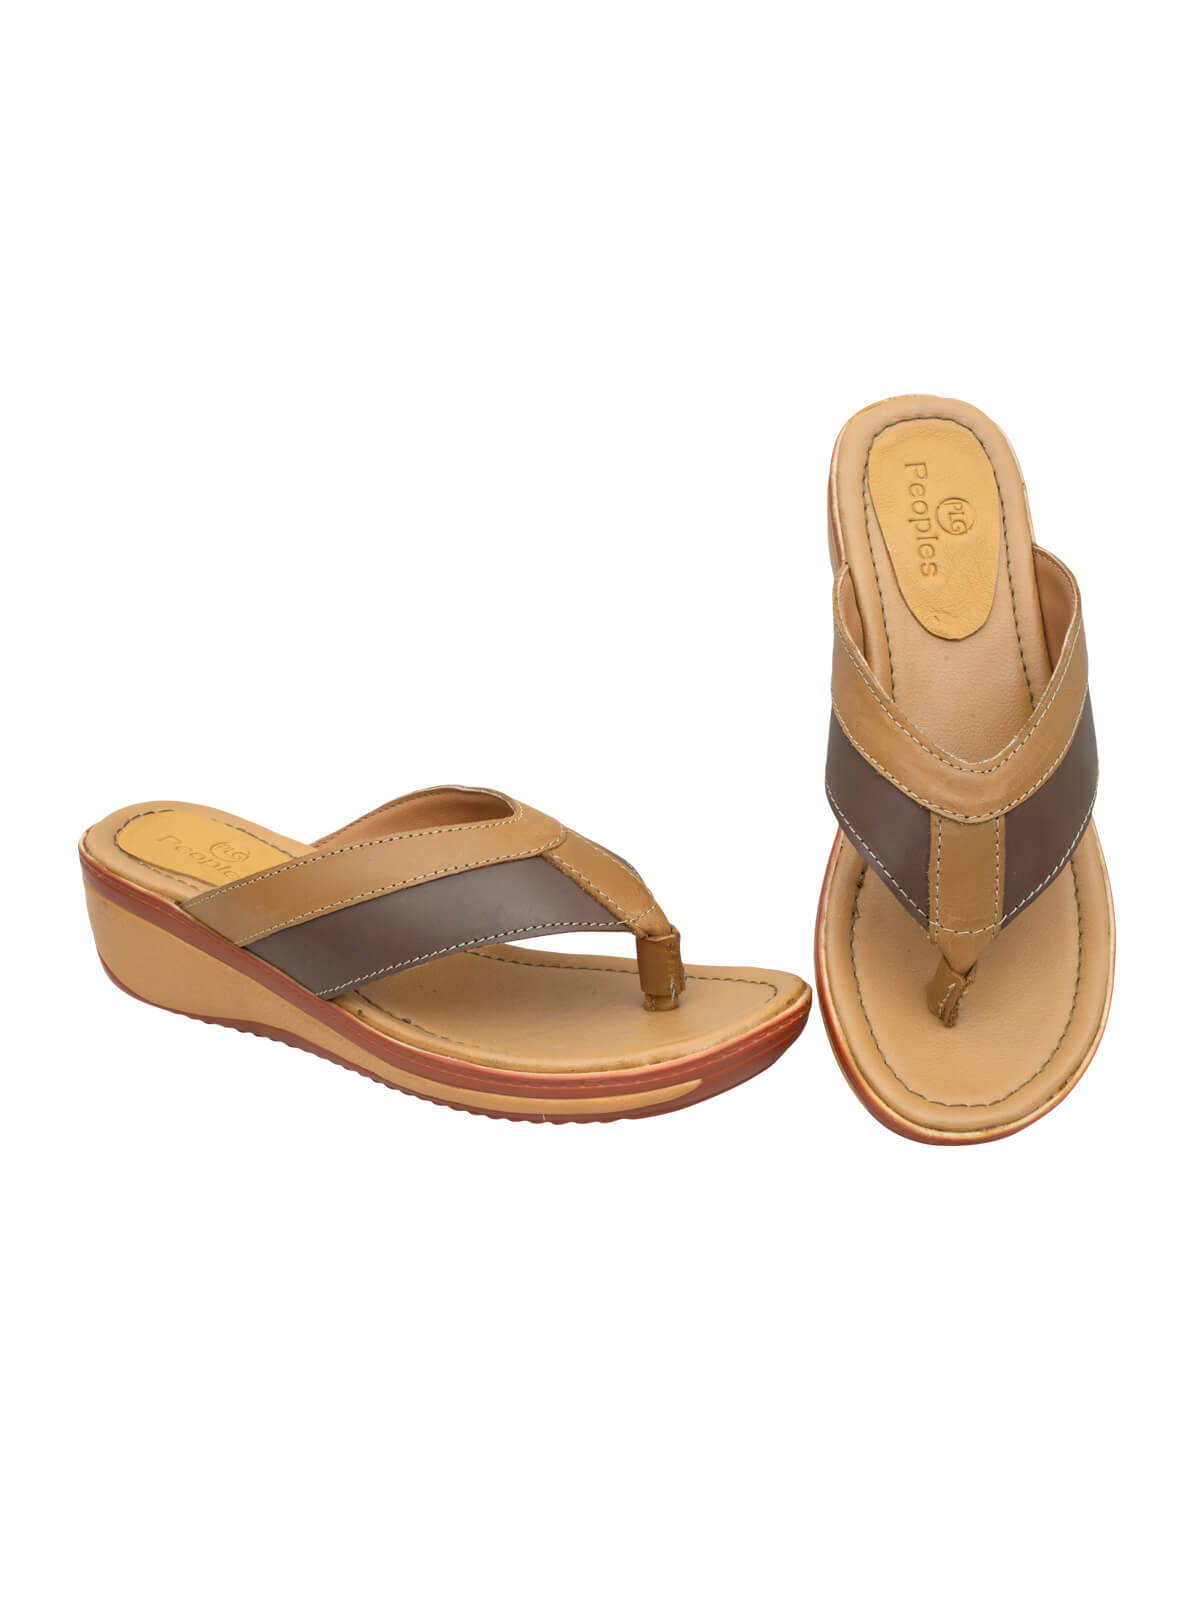 Fallow Brown & Saddle Brown Ladies Sandal